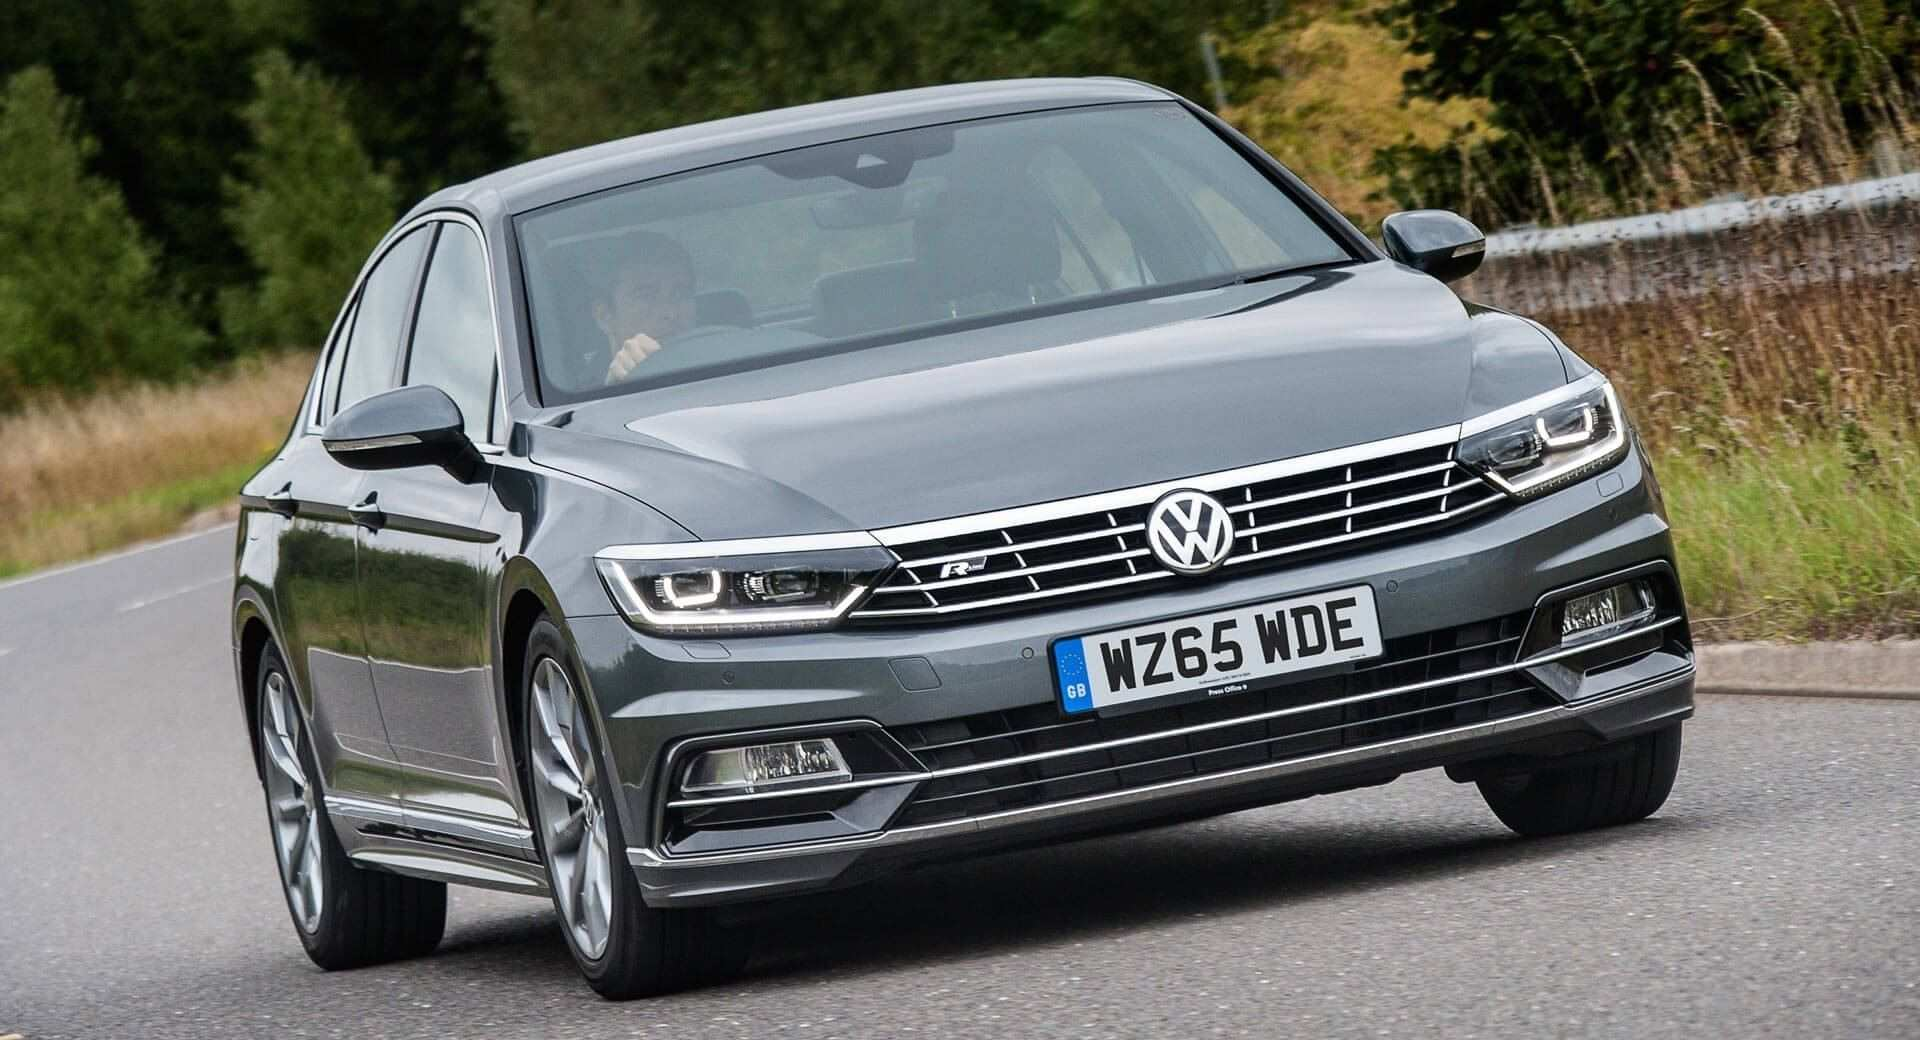 15 Concept of 2020 Vw Cc Images by 2020 Vw Cc